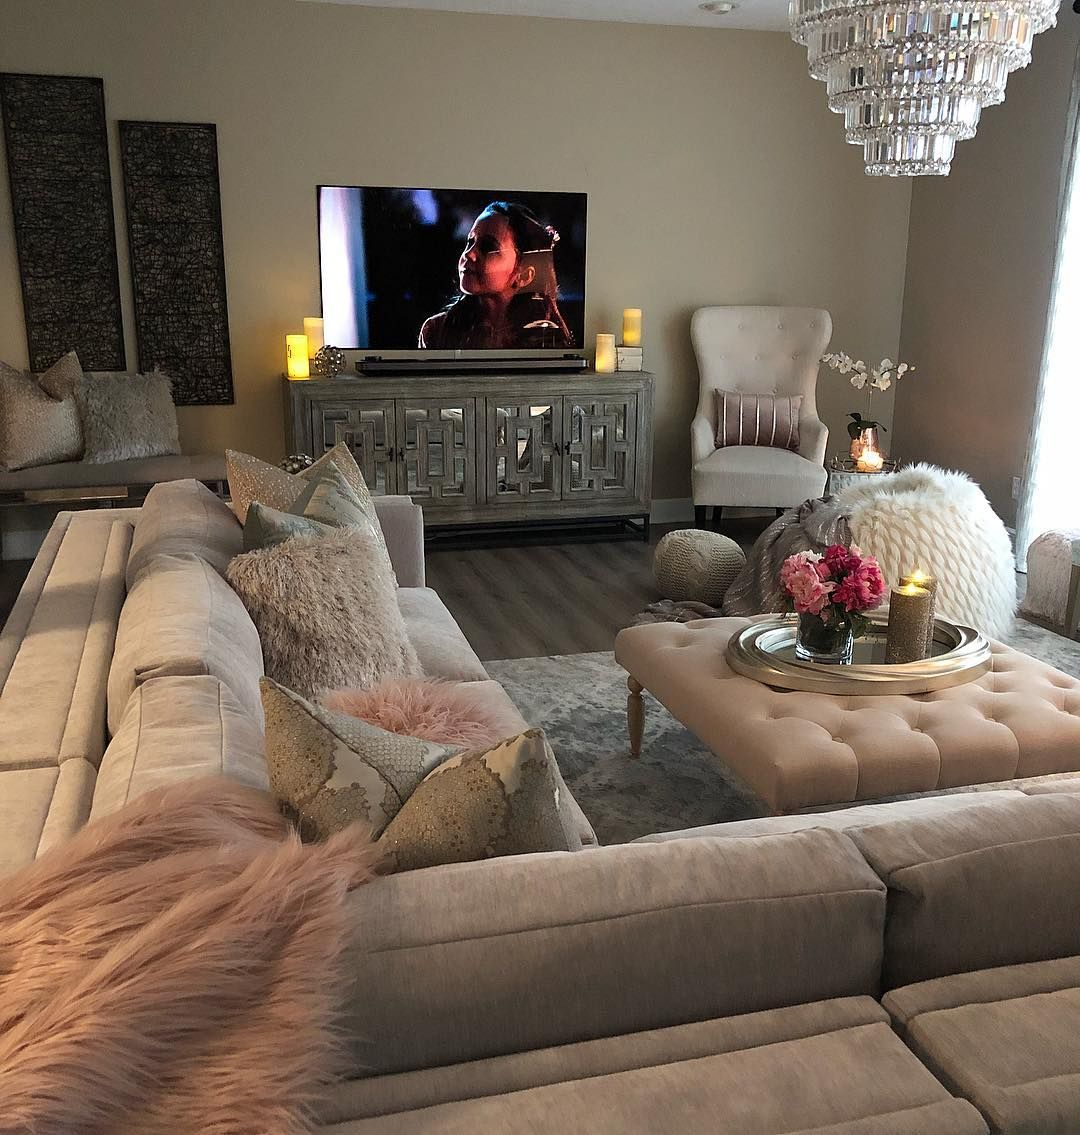 Inspire Me Home Decor On Instagram Sometimes All You Need Is A Bean Bag Candles And A Good Movie Livingroom Layout Living Room Inspo Home Decor